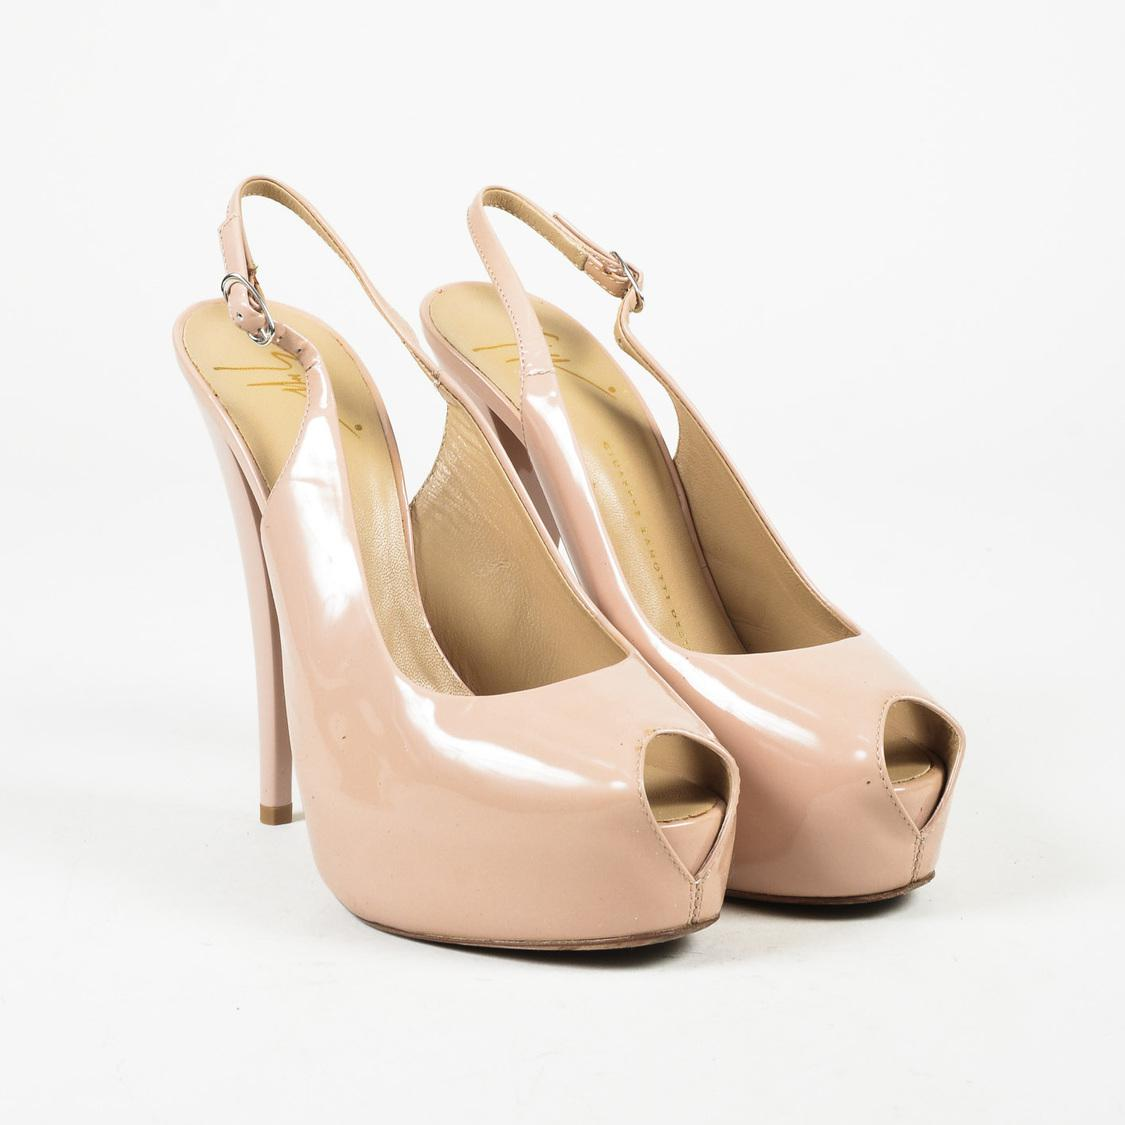 Giuseppe Zanotti Patent Leather Open Toe Pumps - Naked in